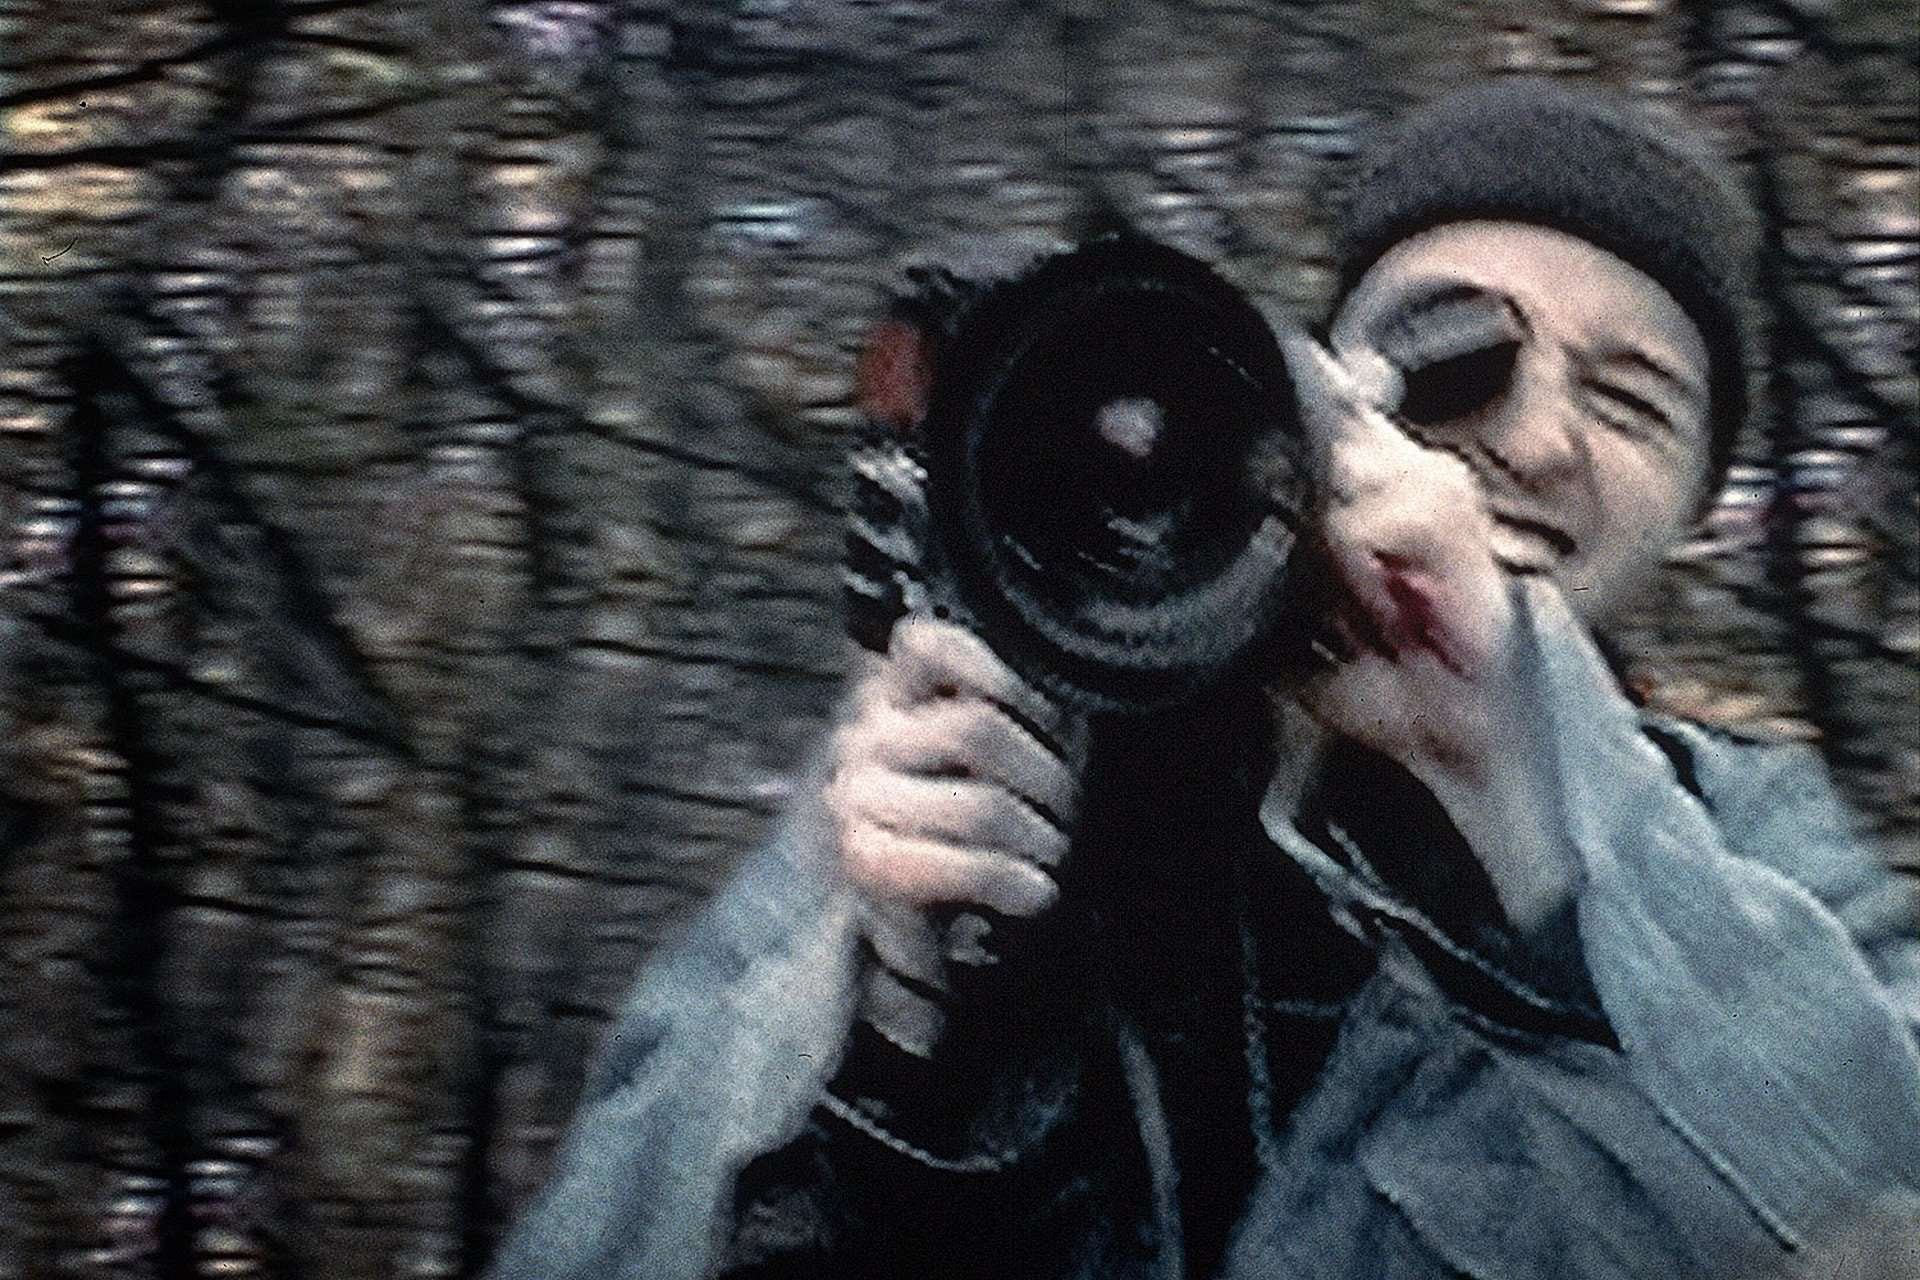 the blair witch project joshua leonard camera man